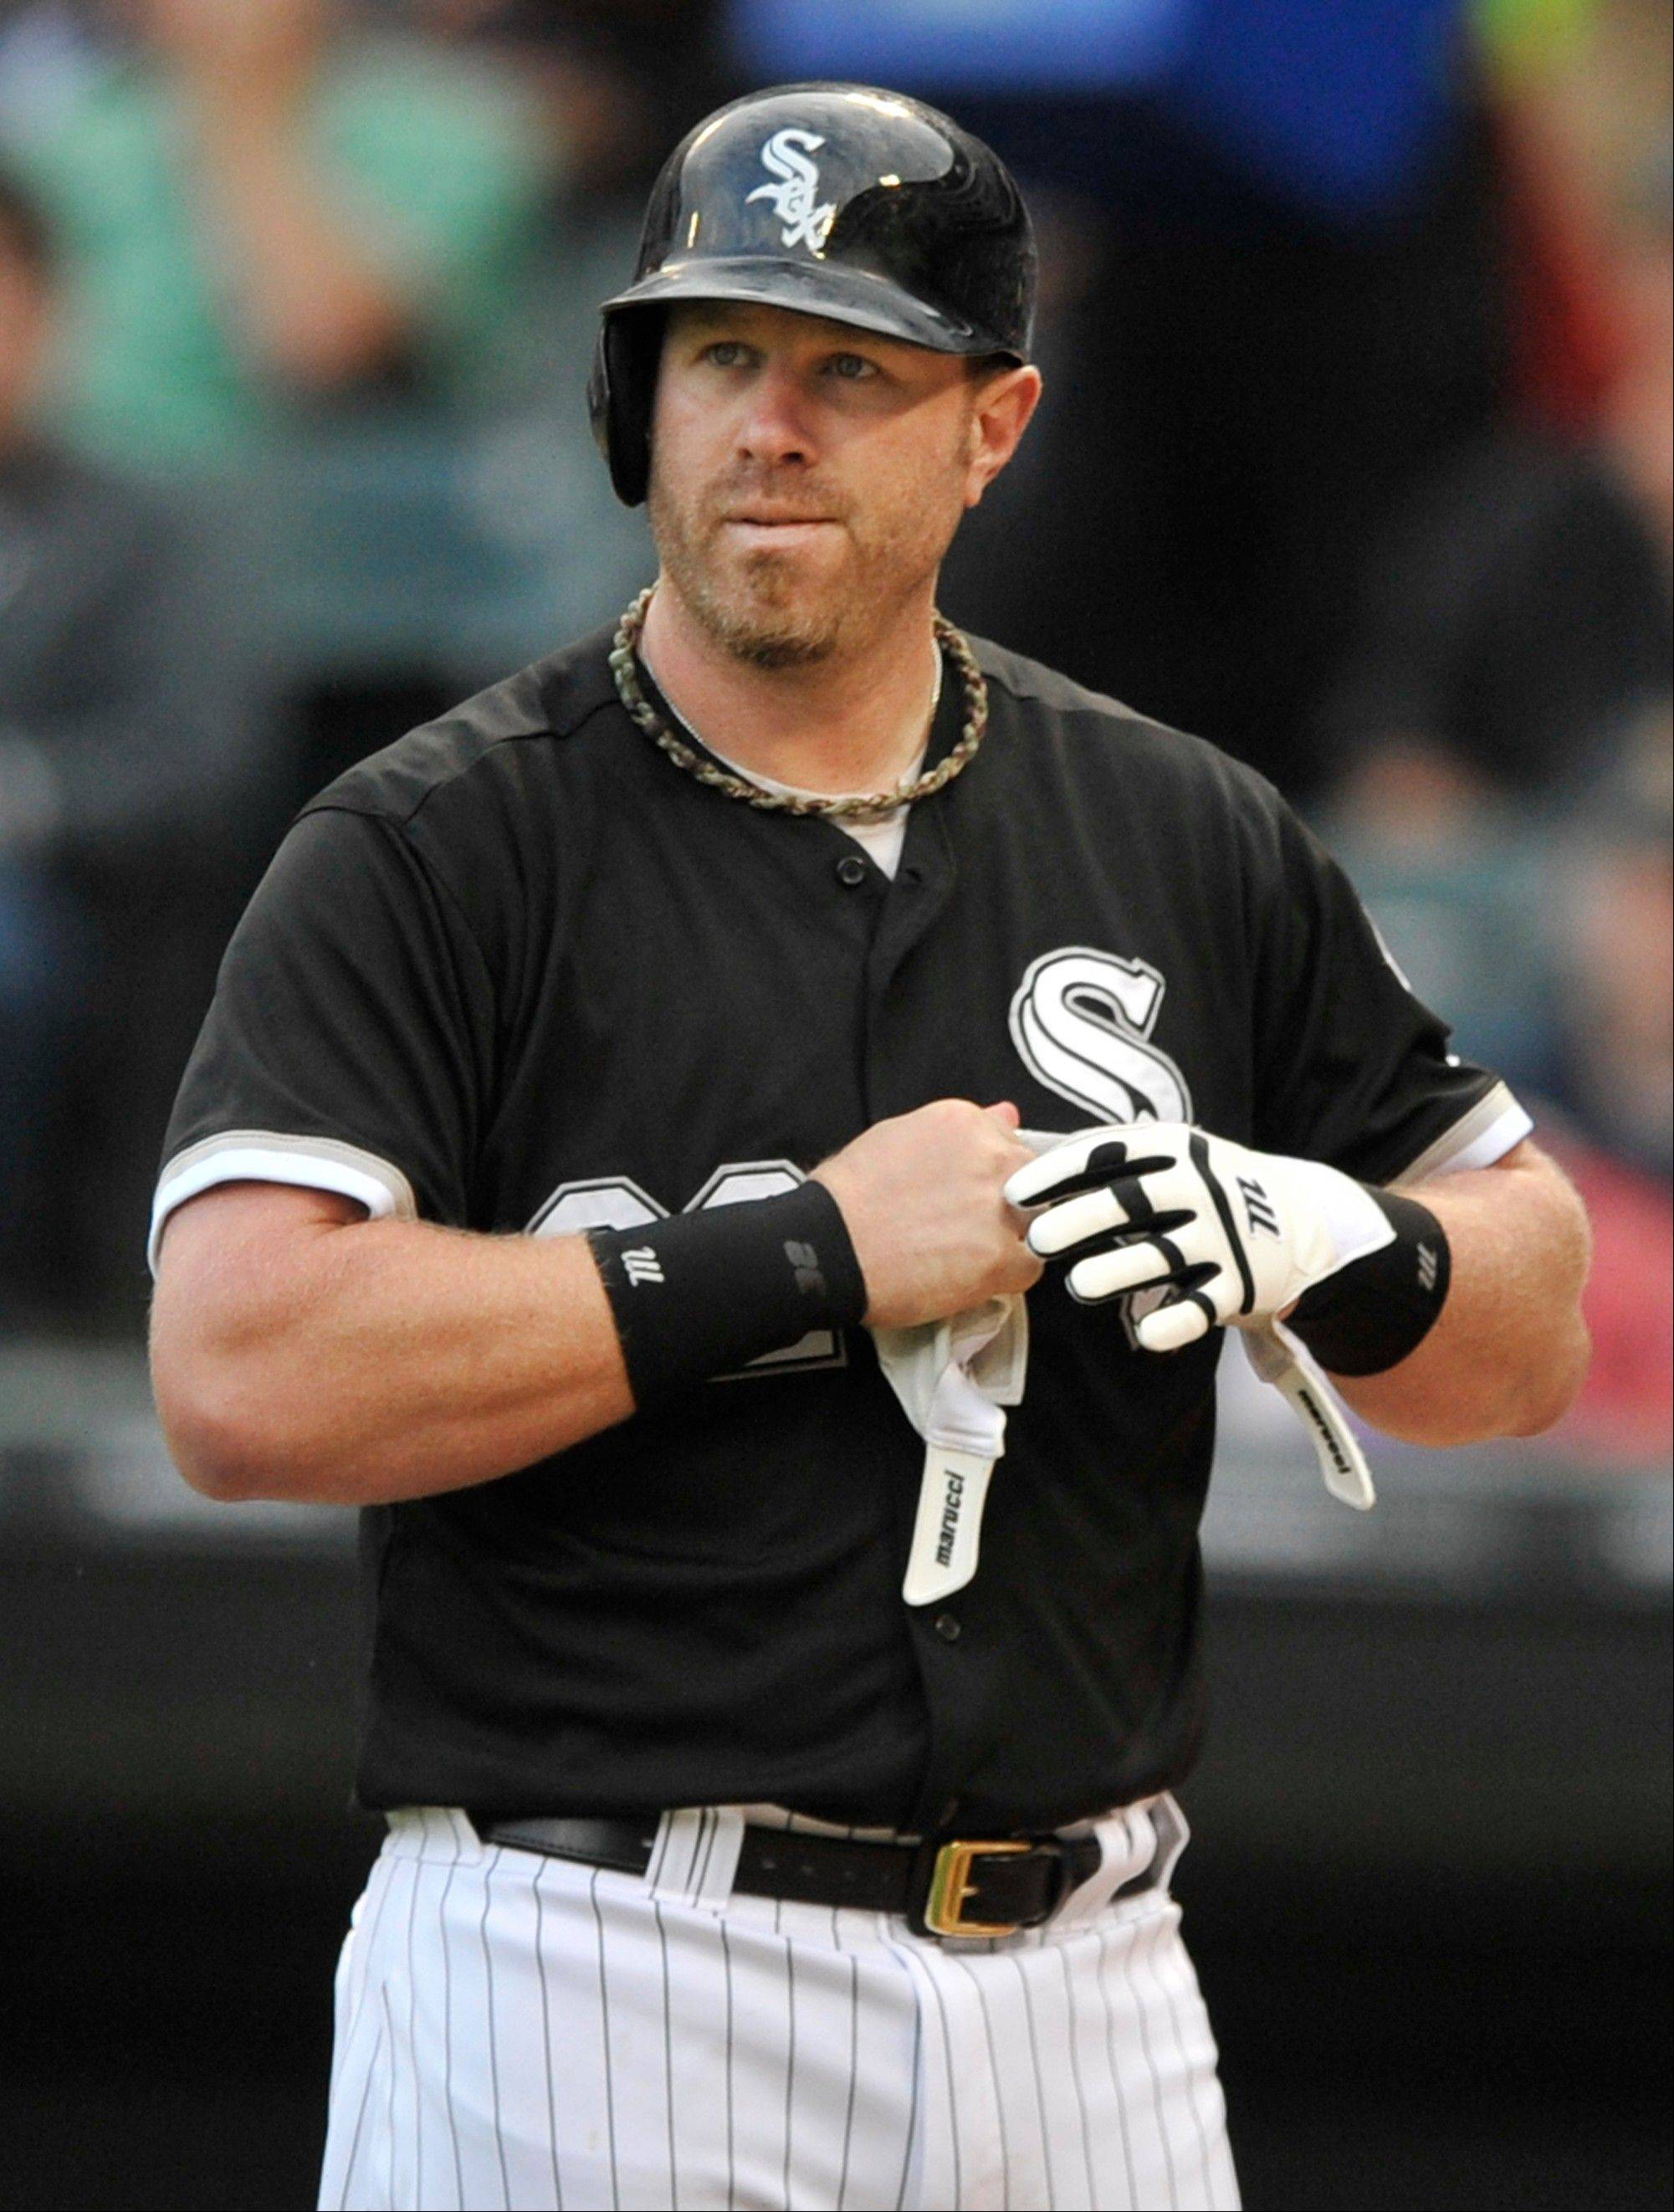 The White Sox�s Adam Dunn reacts after striking out during the first inning of a baseball game against the Kansas City Royals Saturday.